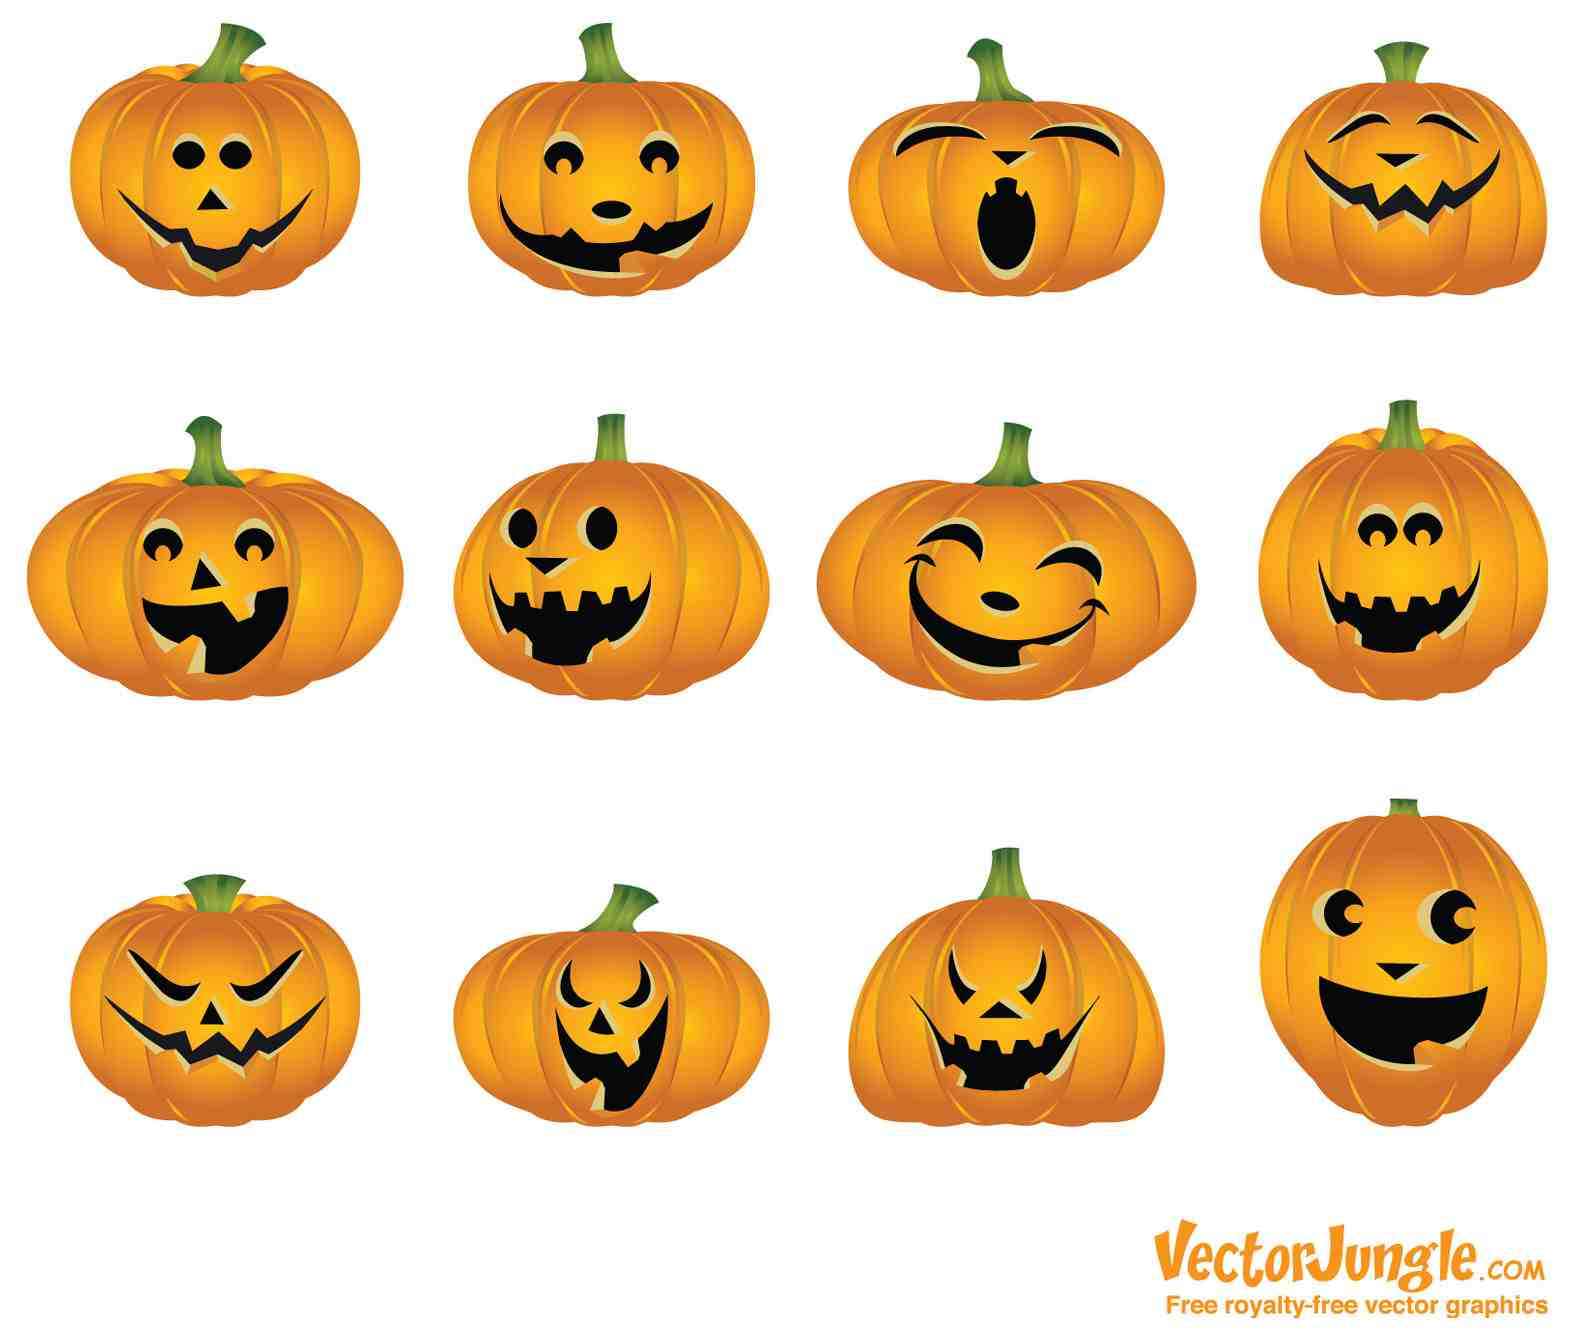 Different Smilie Halloween Day 2020